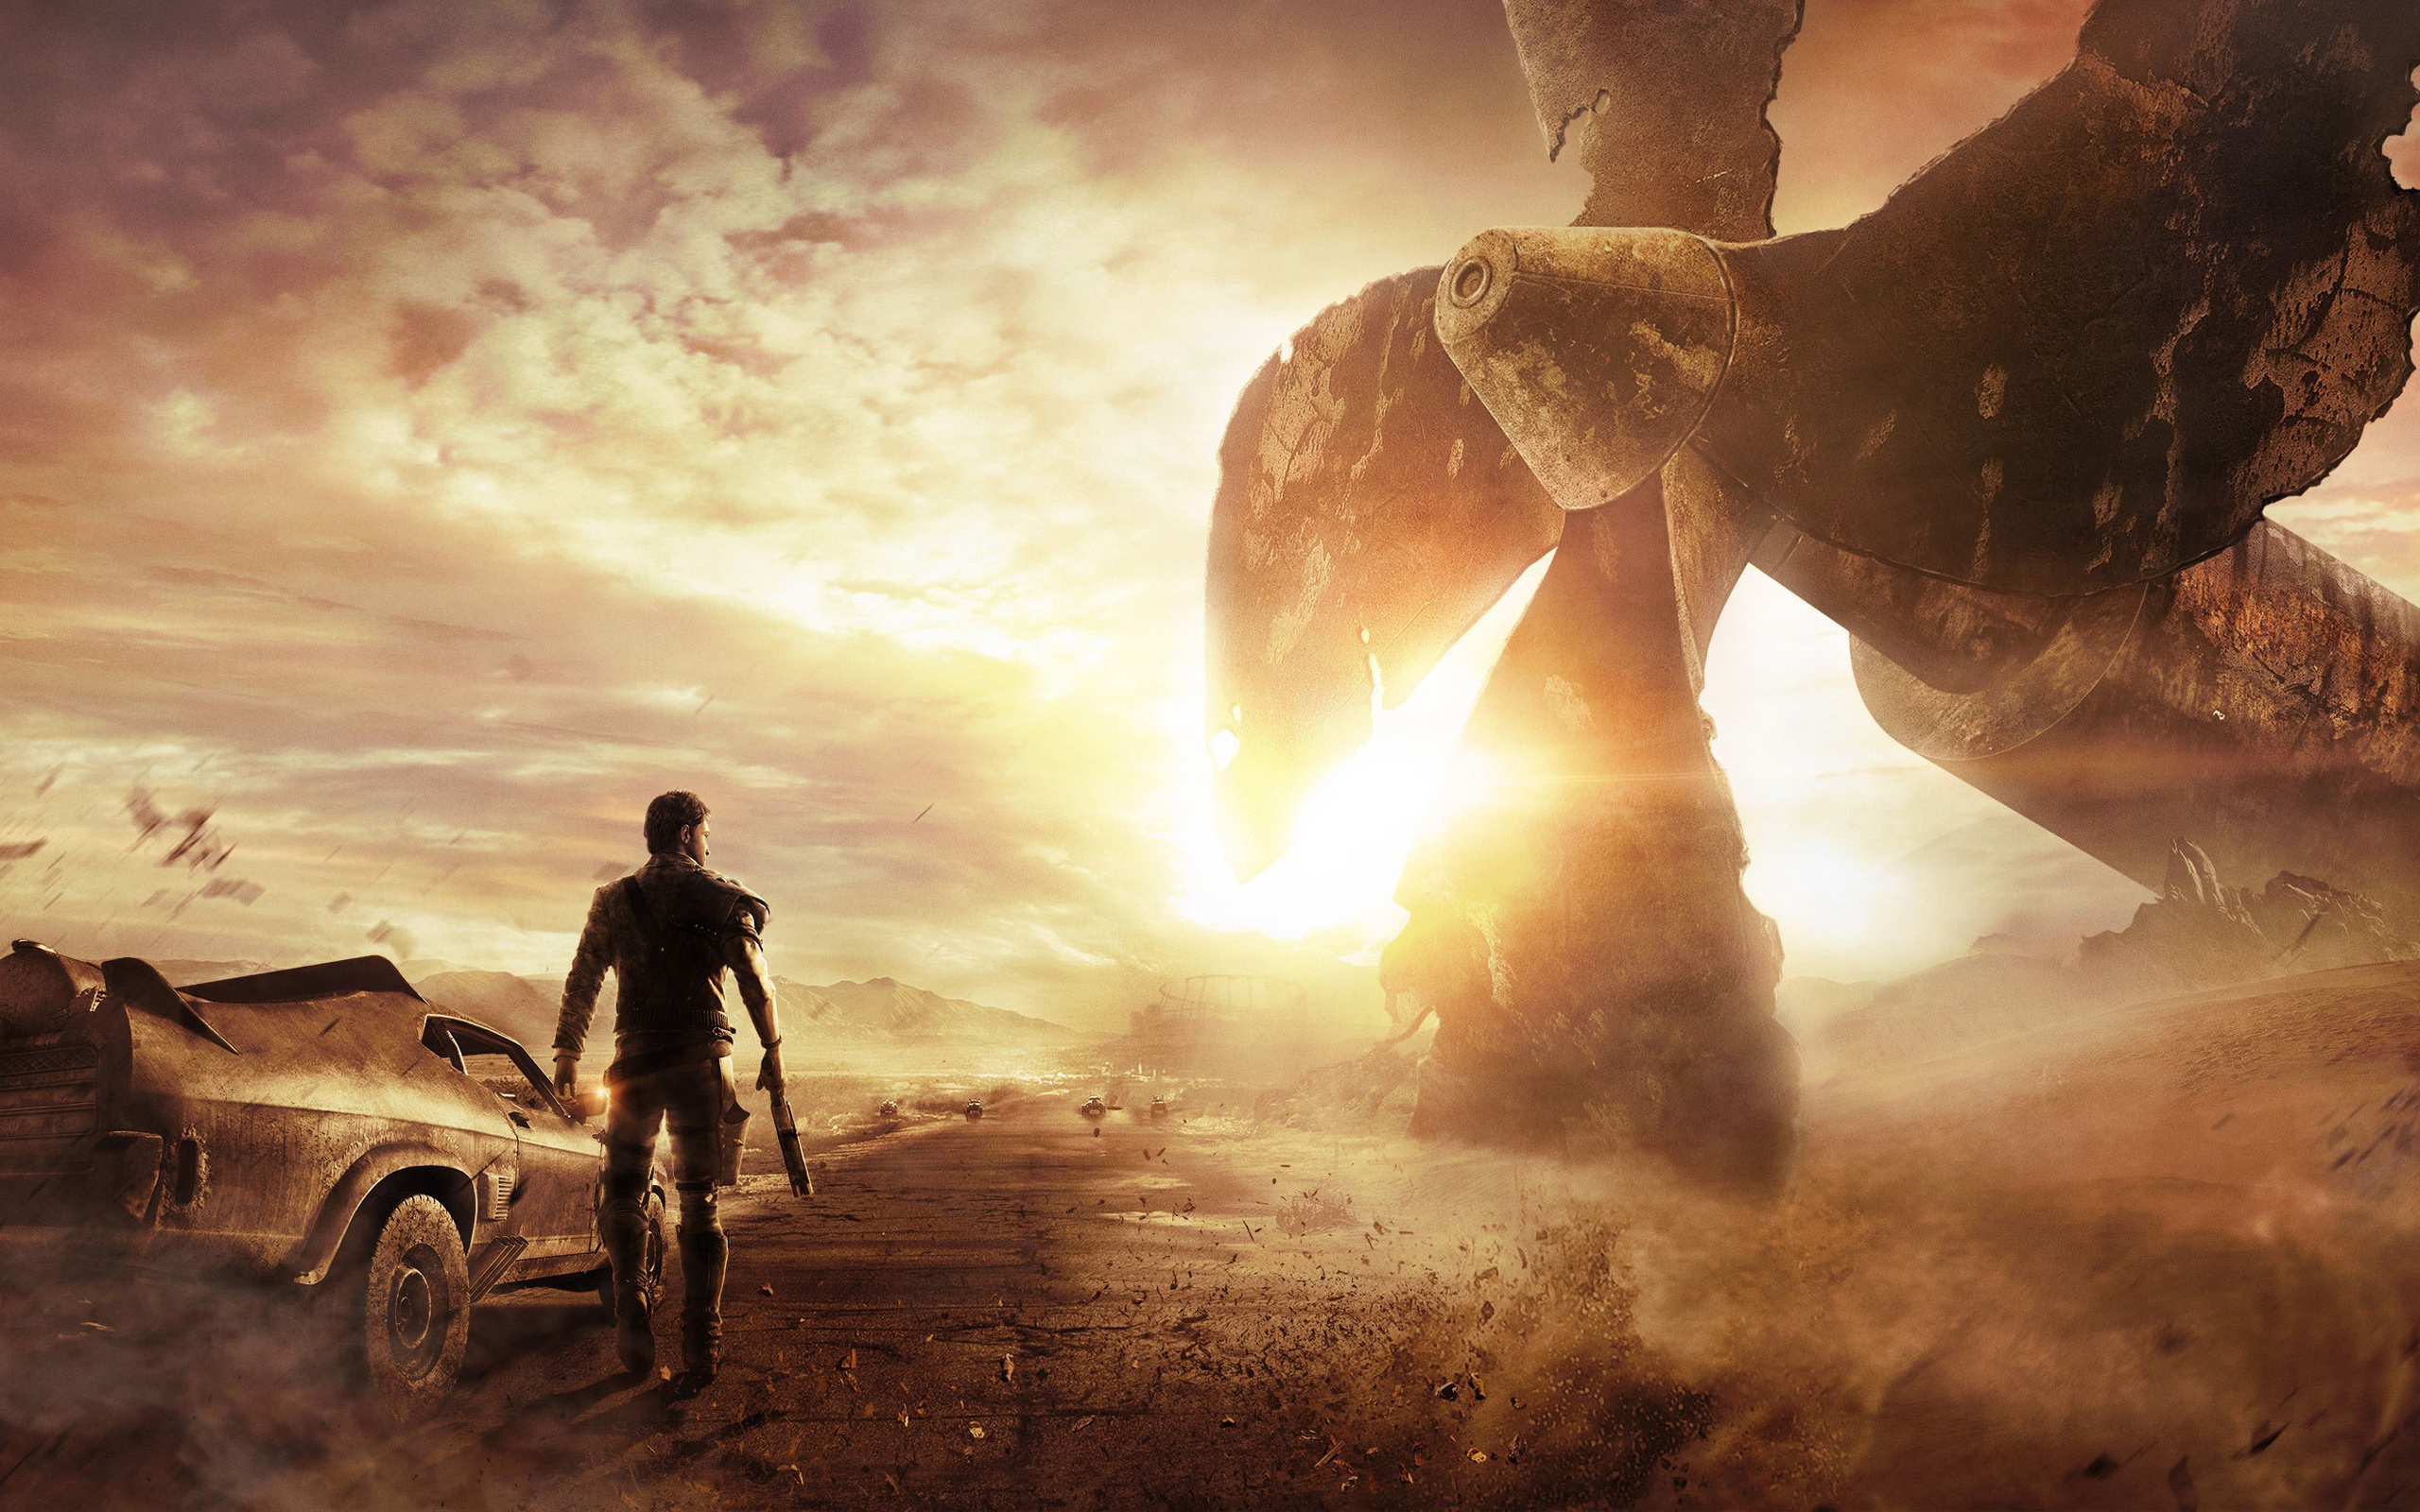 2014 mad max game wallpapers wallpapers hd 2014 mad max game voltagebd Gallery